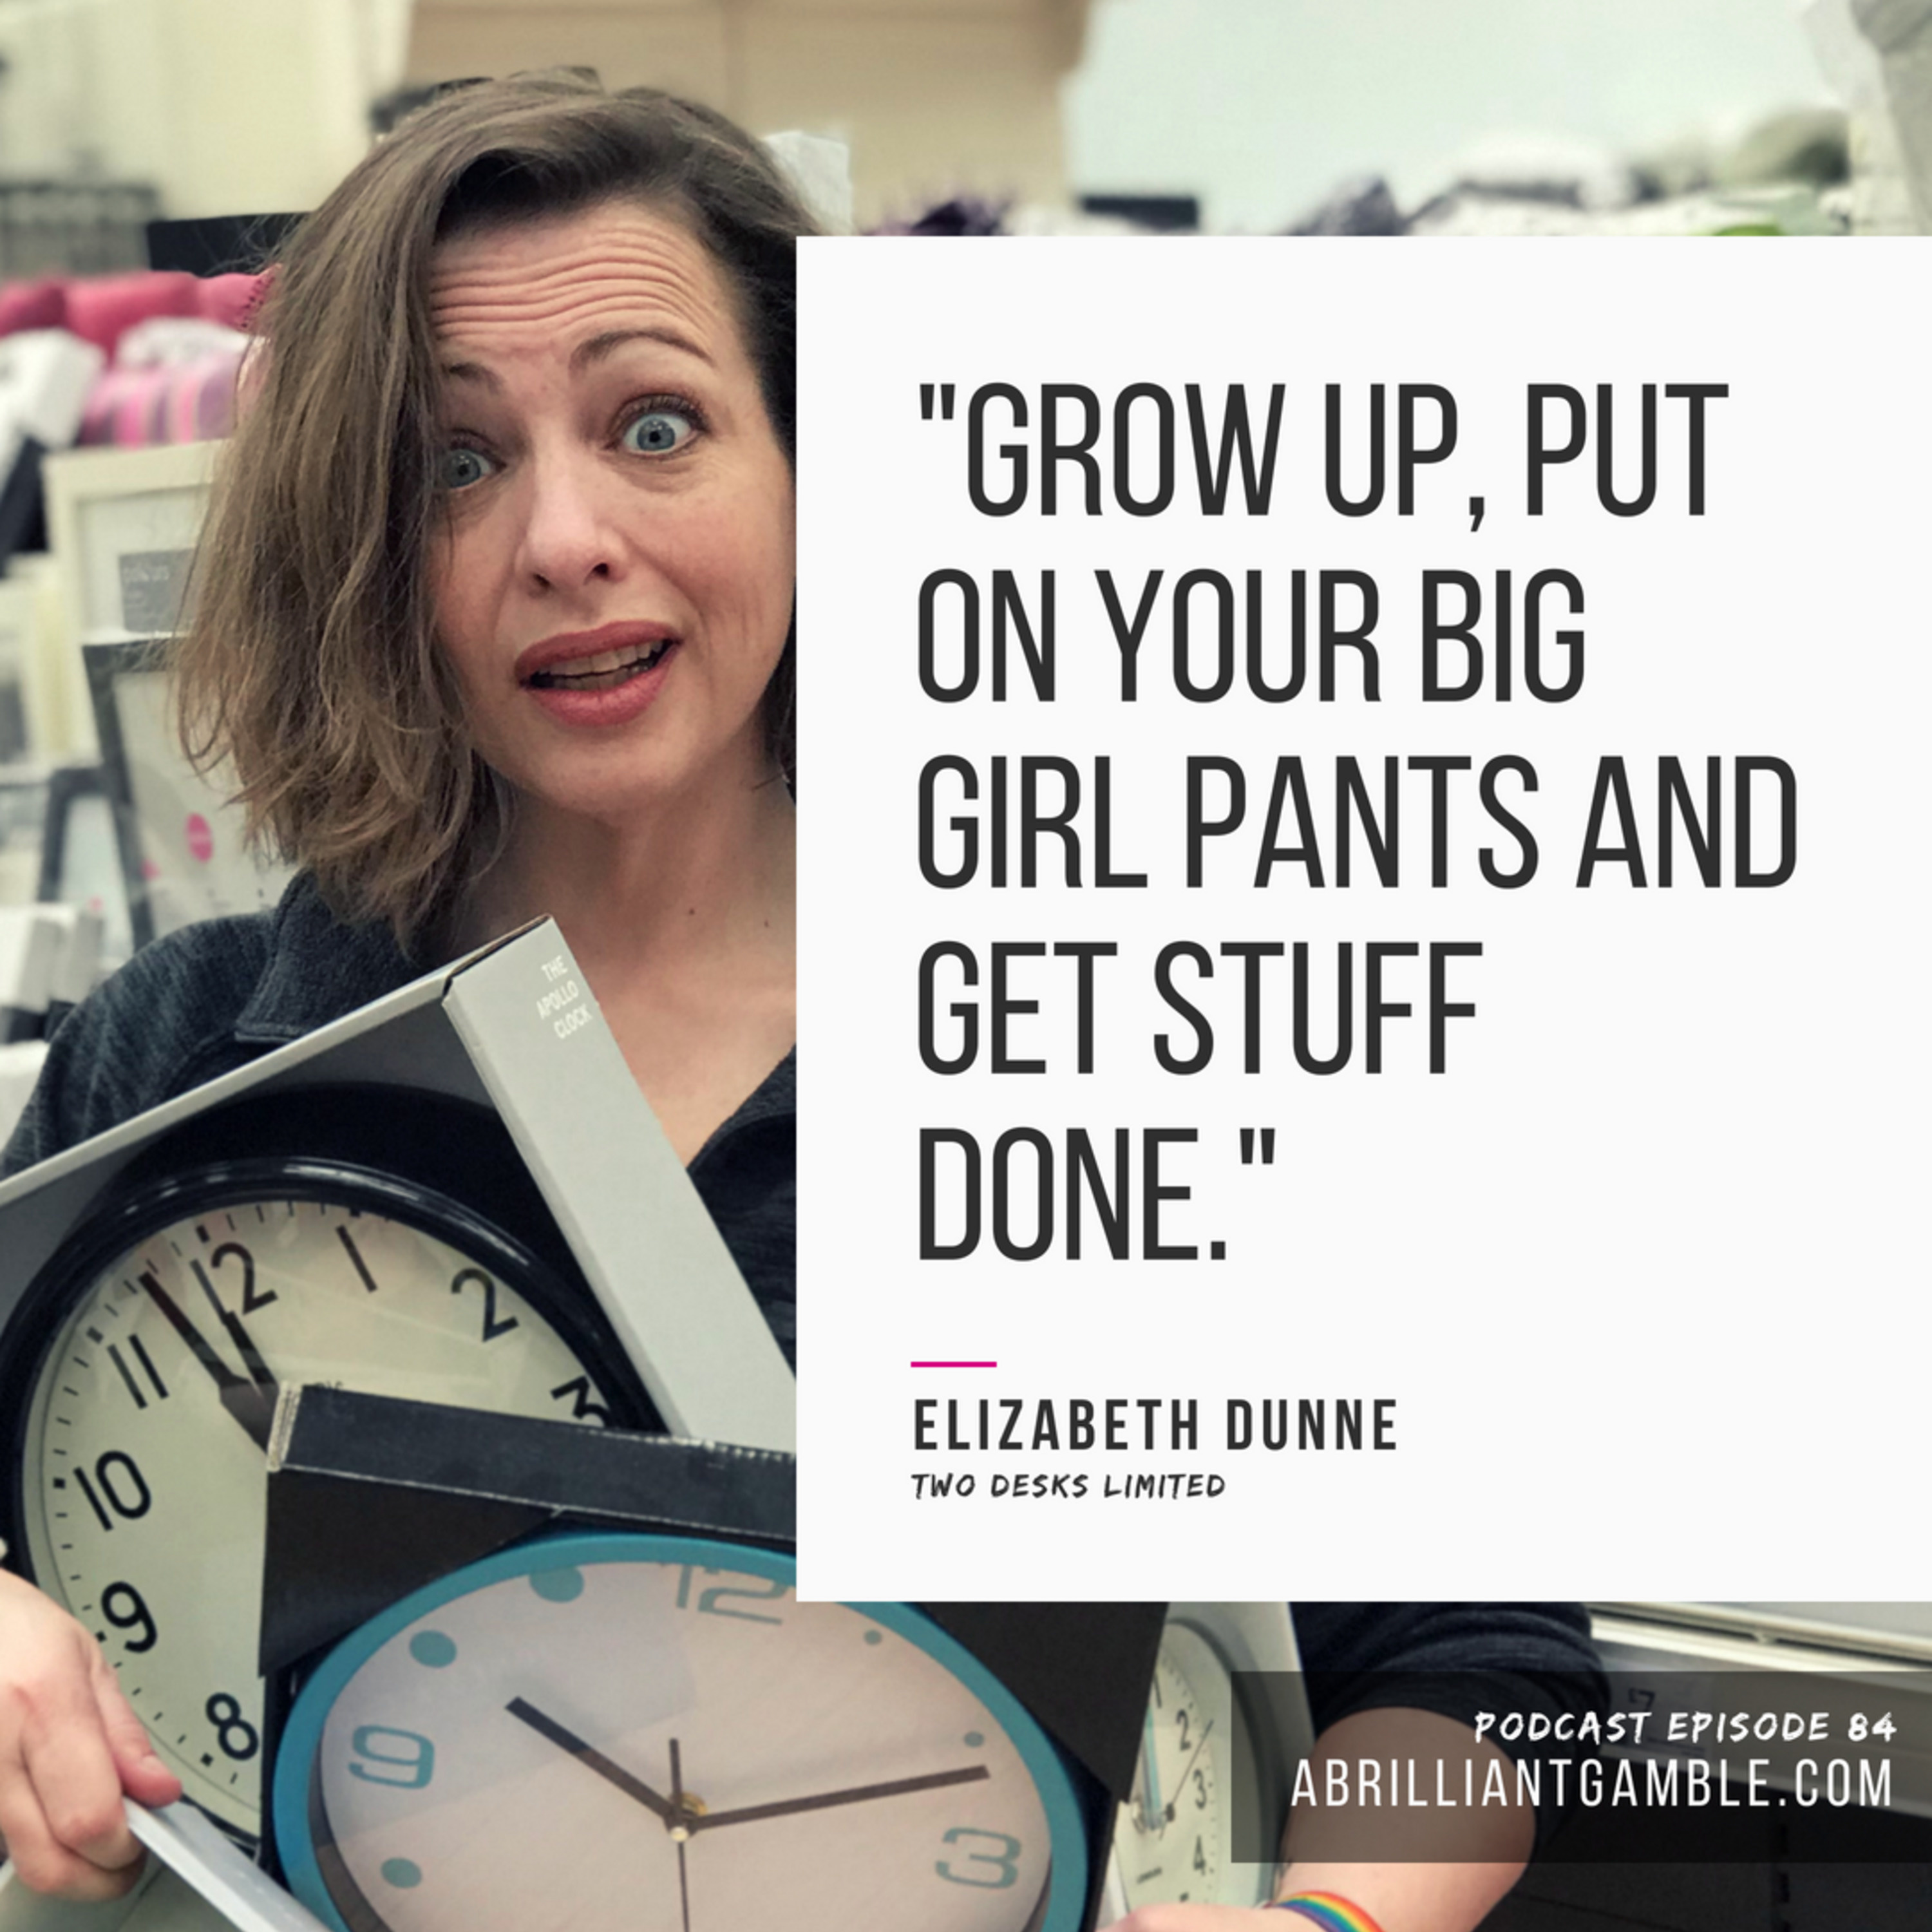 84 Putting on Your Big Girl Pants with Elizabeth Dunne, Co-Founder of Two Desks Limited